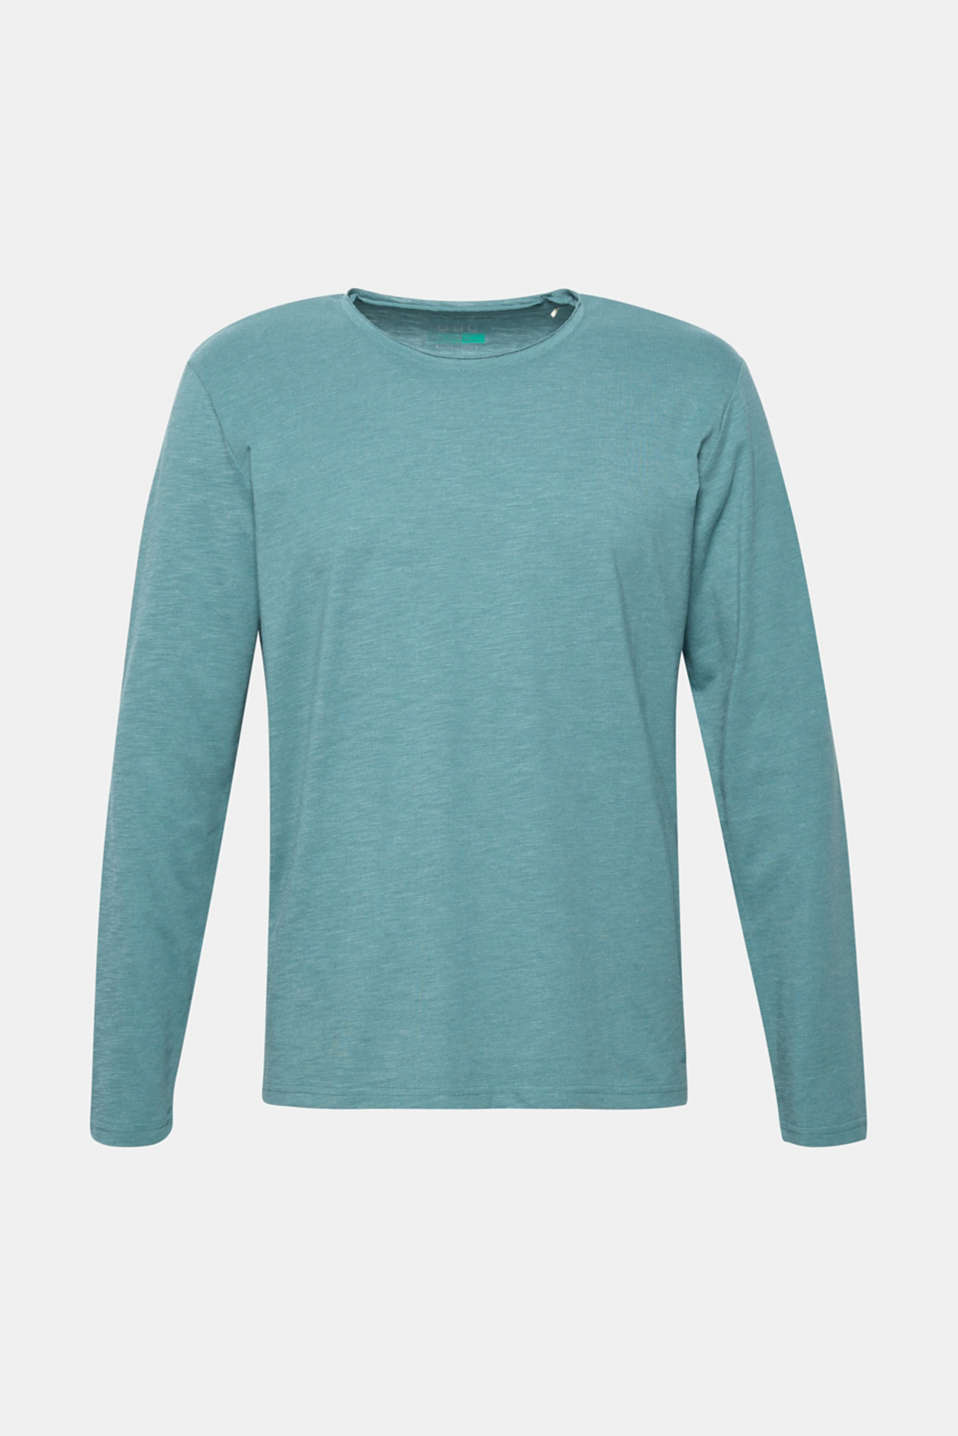 Slub jersey long sleeve top in blended cotton, DUSTY GREEN, detail image number 6